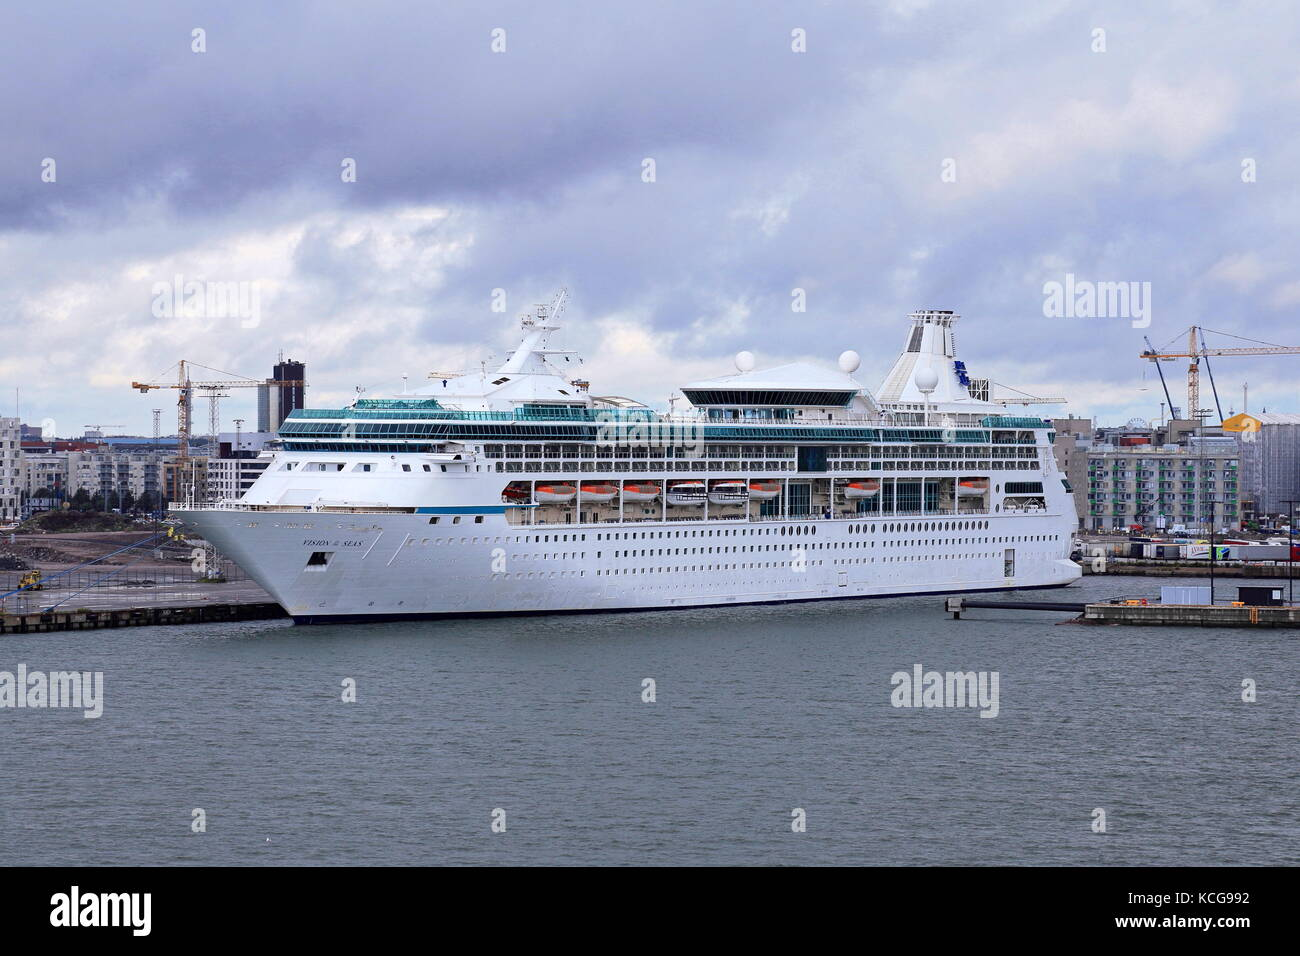 MS Vision of the Seas cruise ship in the harbour of Helsinki, Finland - Stock Image